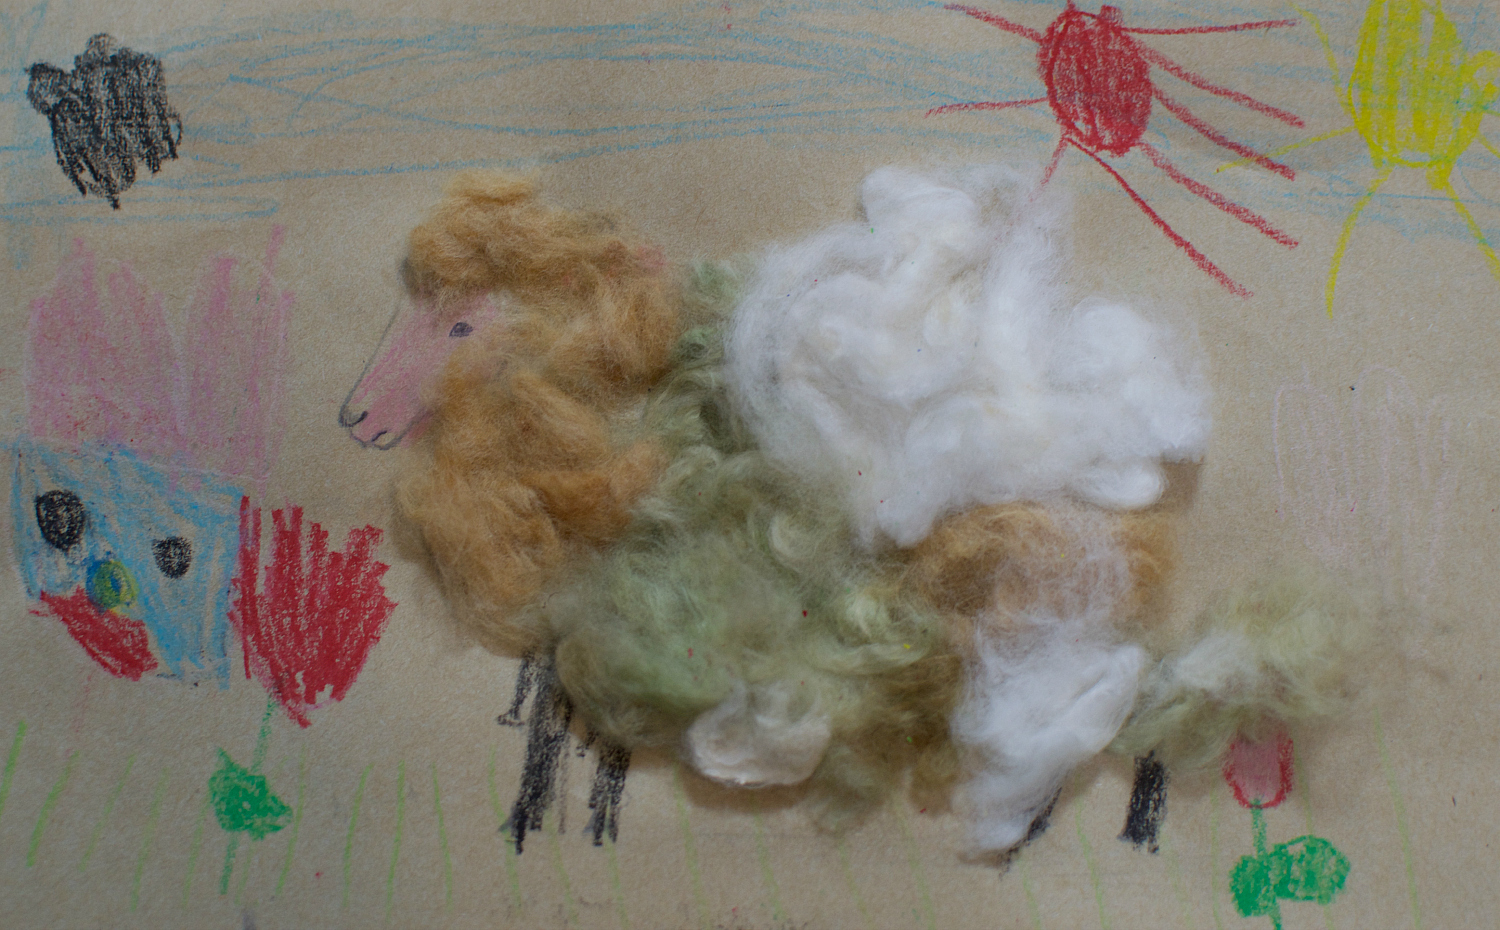 These are the three colors that organic cotton grows in naturally: brown, green, and cream. I'm no cotton expert, so when I looked into it, I learned that the green apparently comes from the wax layers and the brown from tannin in the fibers.